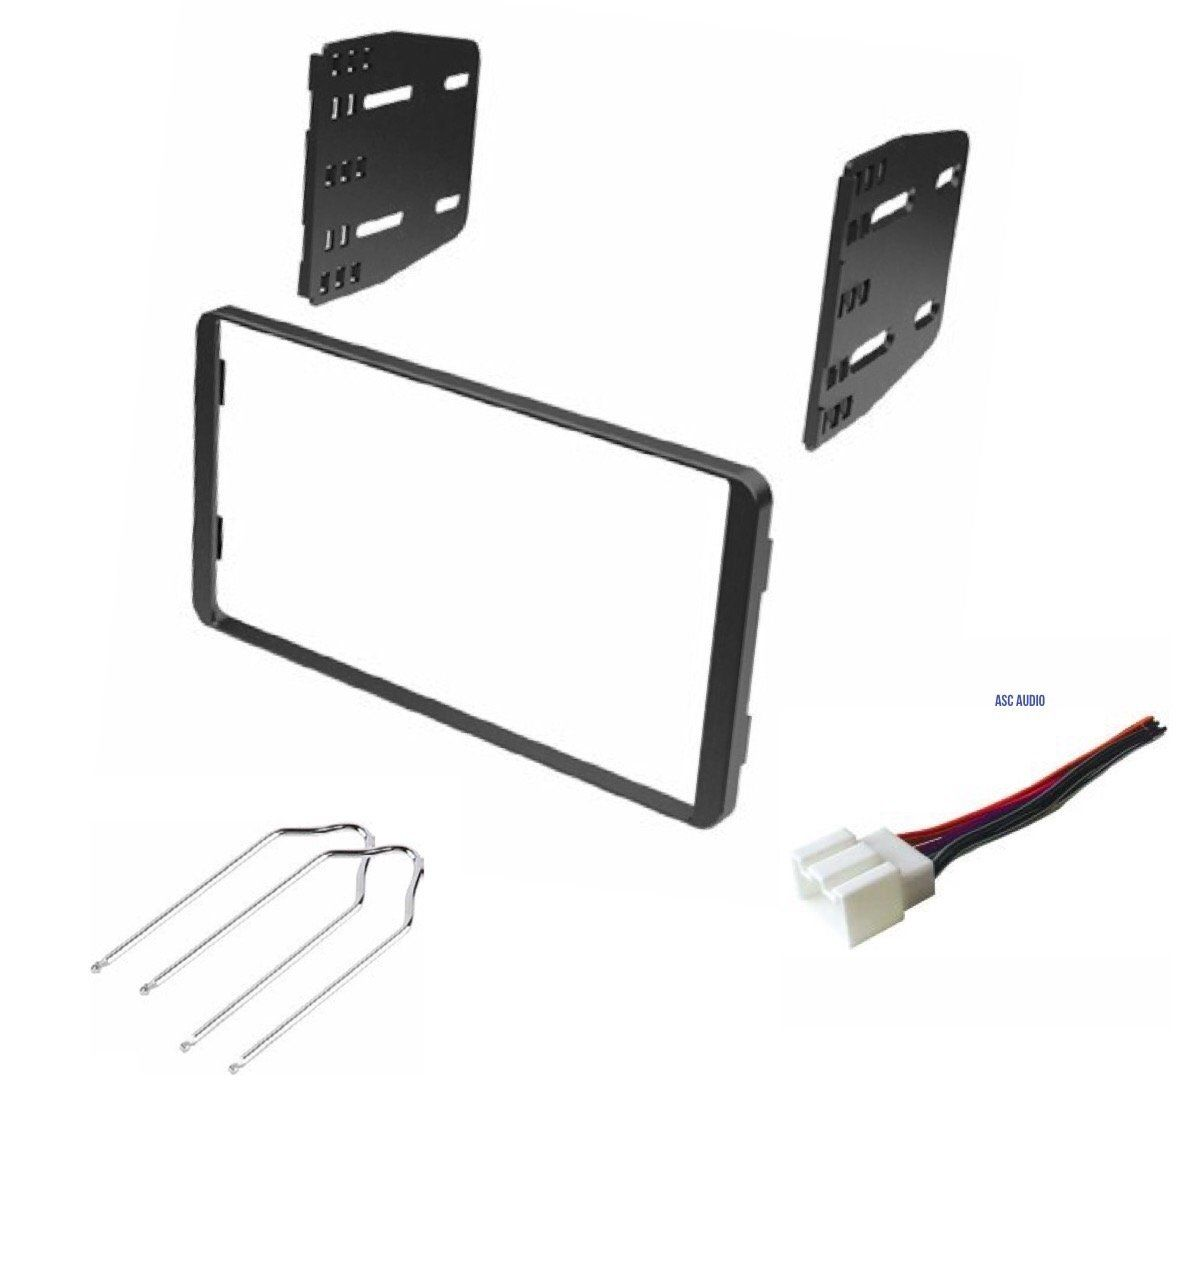 hight resolution of car stereo dash kit wire harness and radio tool for installing a double din radio for 1998 2008 ford econoline 1999 2003 ford f 150 1999 2004 ford